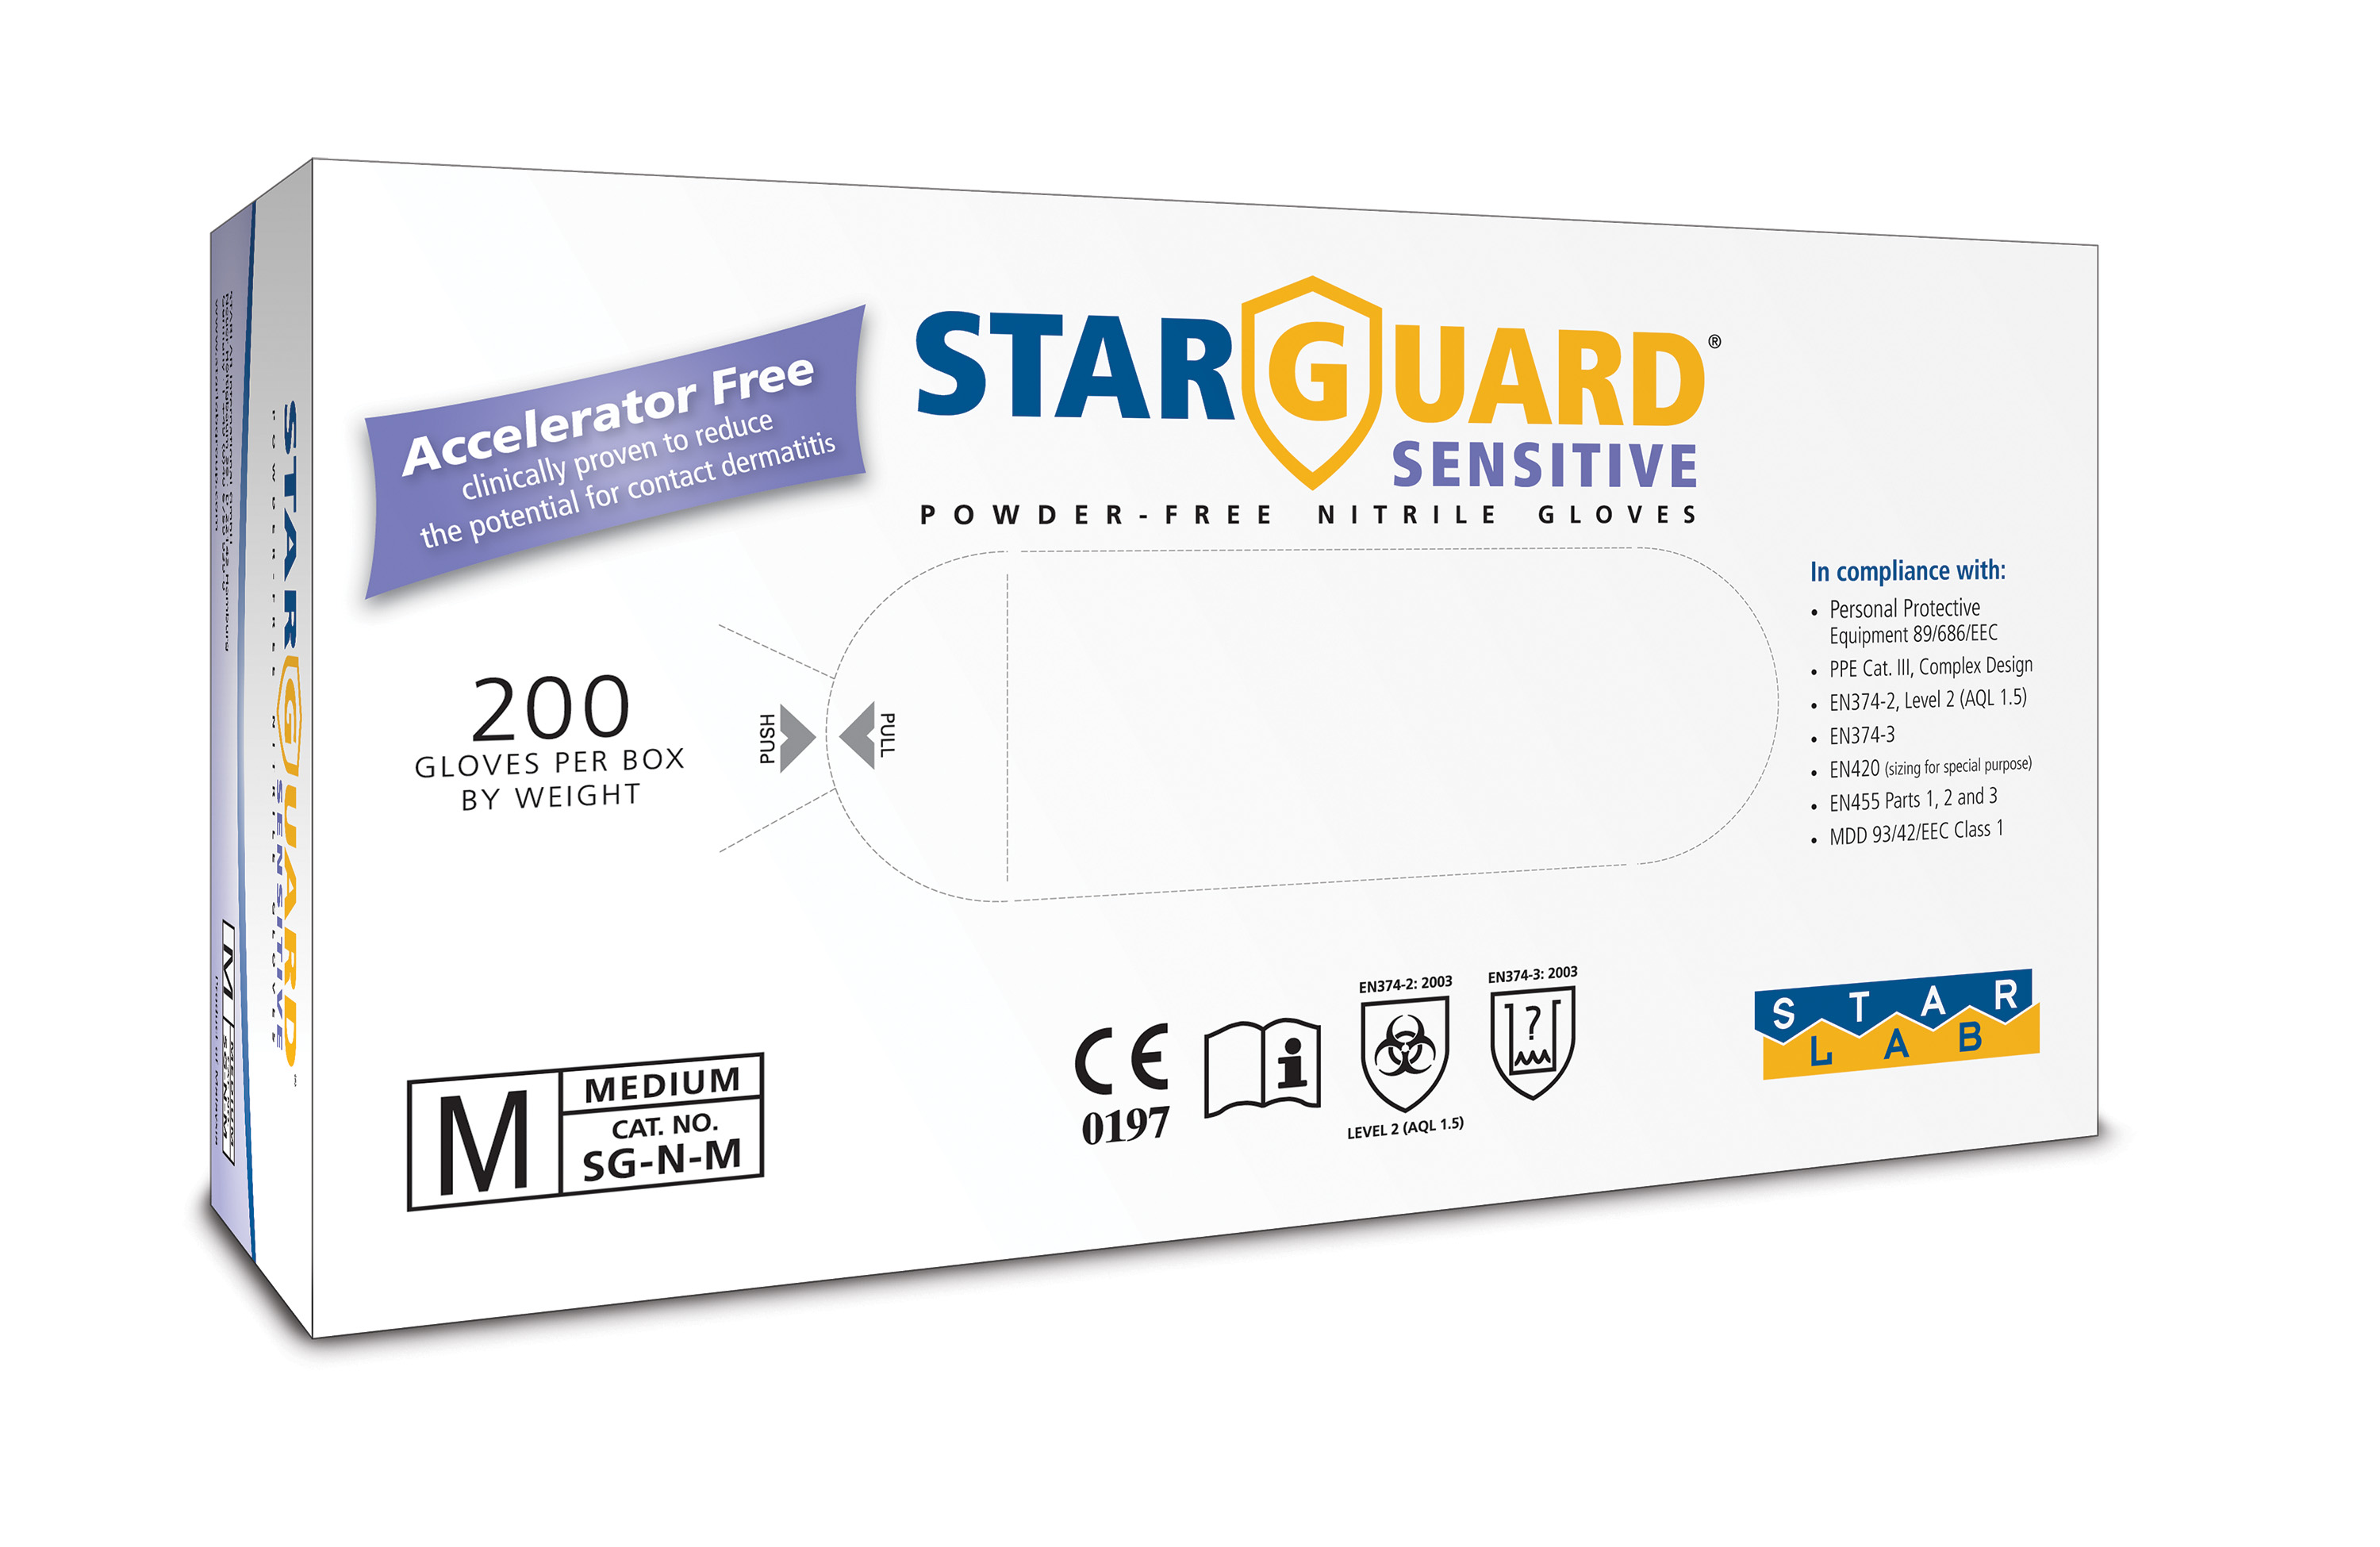 StarGuard SENSITIVE Nitrile Gloves, Powder Free, Blue, Size M, Pk/ 10 x 200 gloves